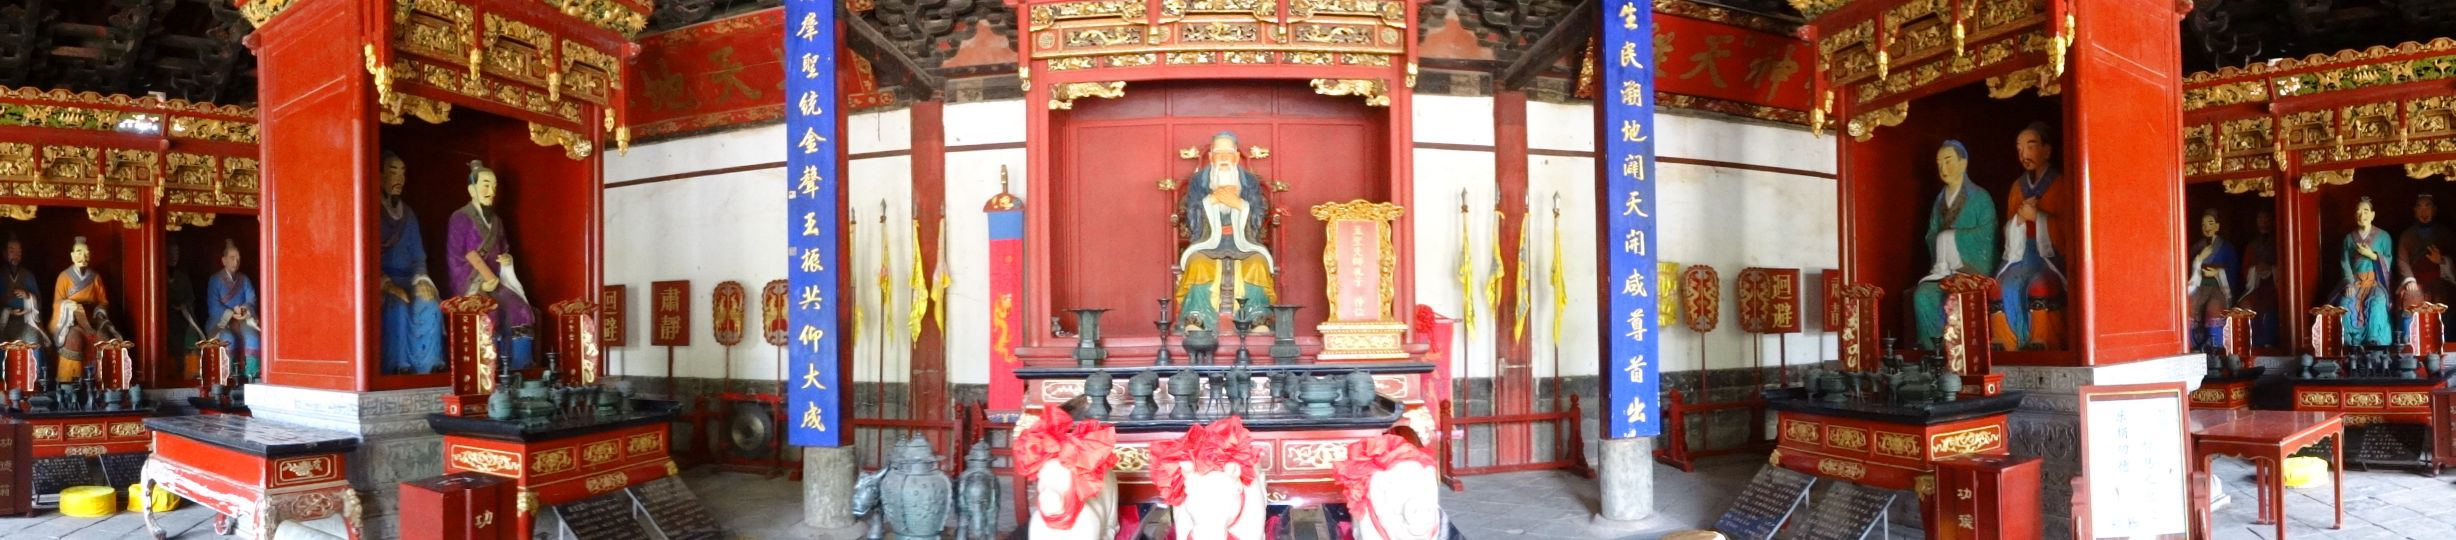 Buddhist temple in Jianshui